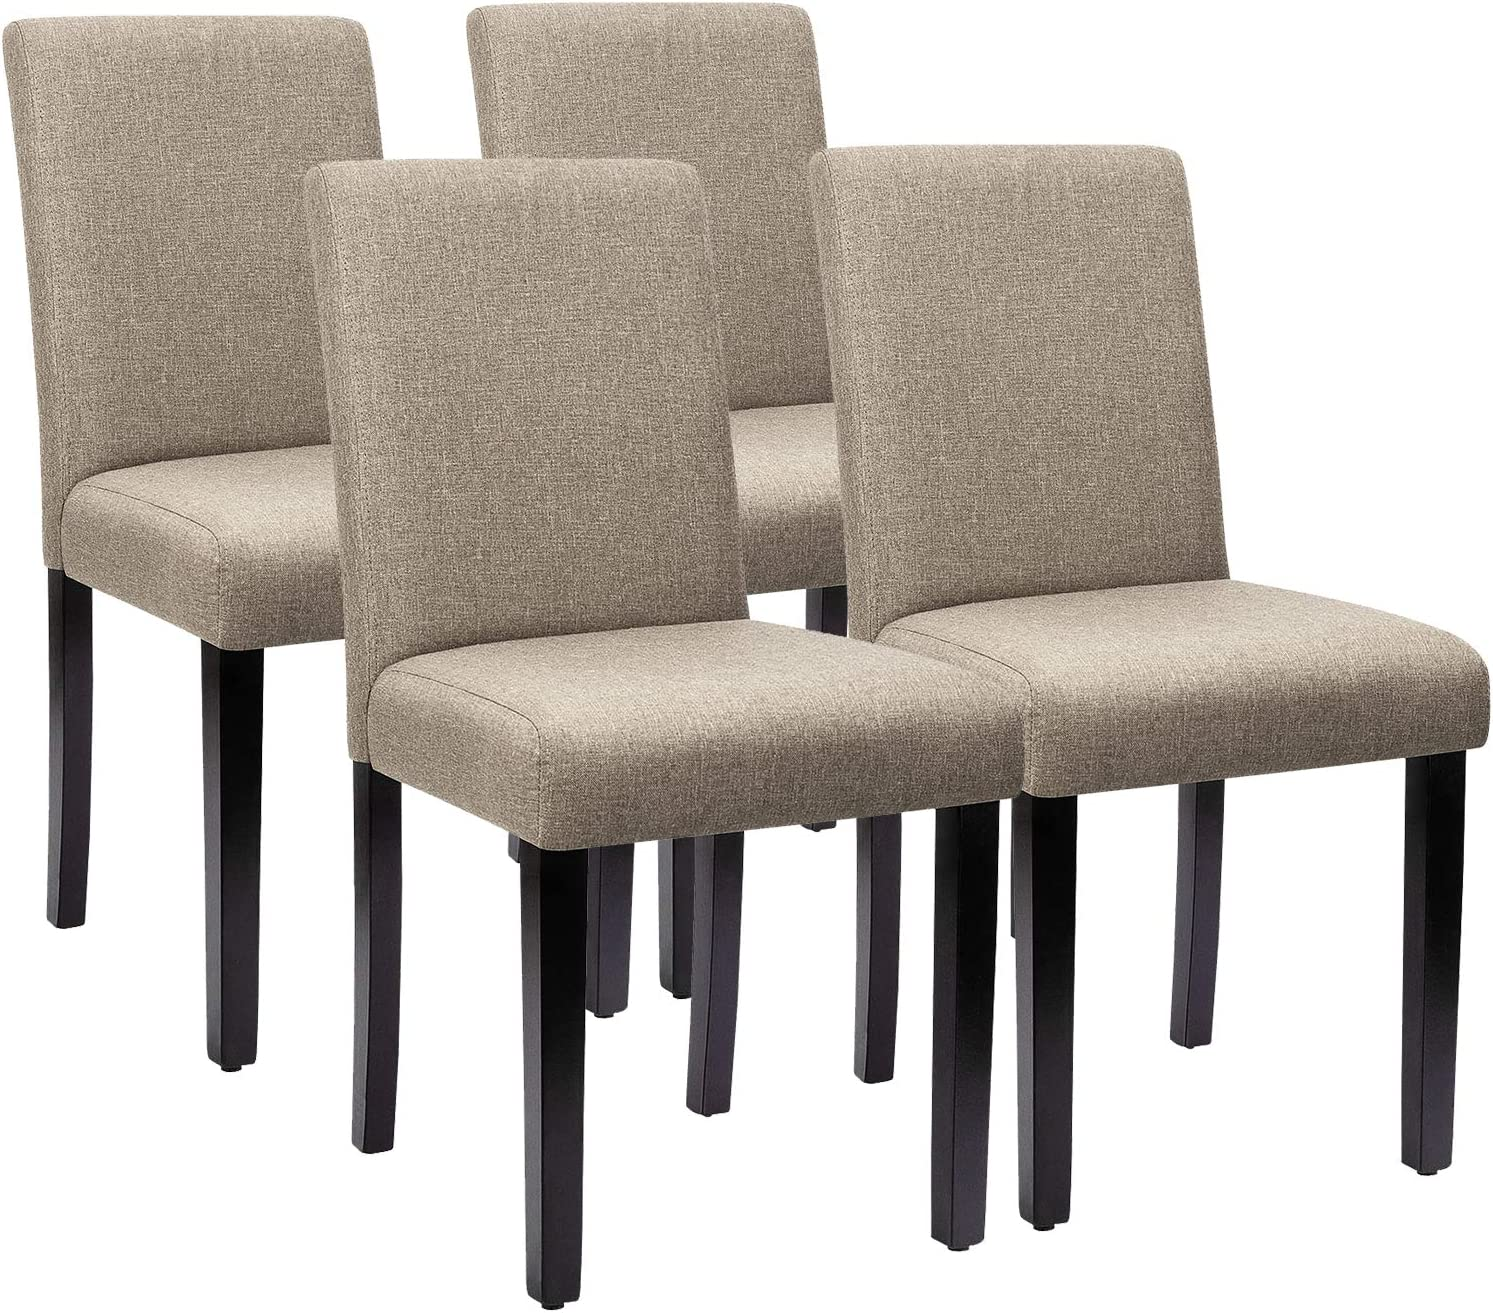 Furniwell Dining Chairs Fabric Upholstered Parson Urban Style Kitchen Side  Padded Chair with Solid Wood Legs Set of 10 (Beige)